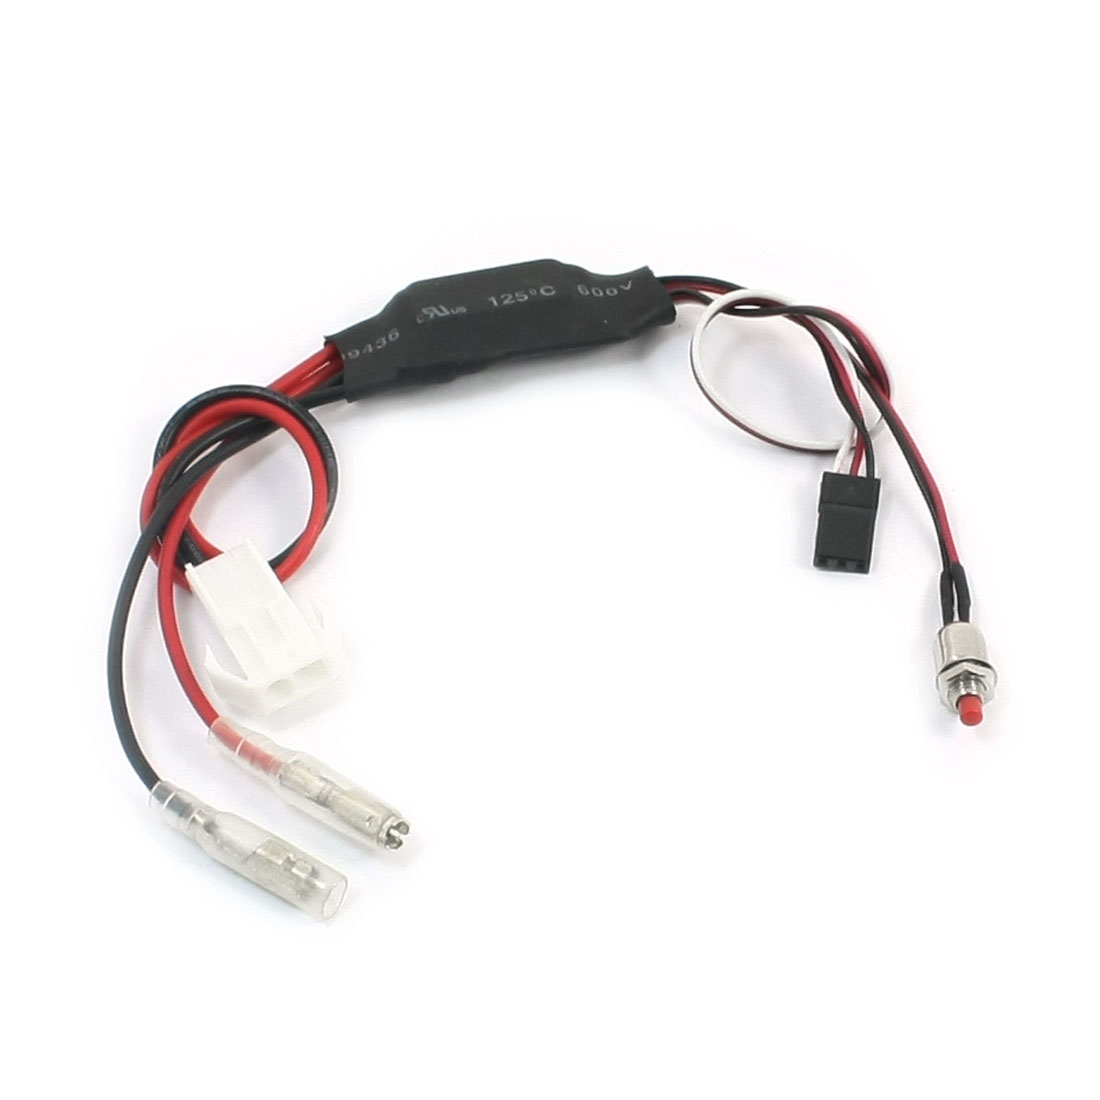 RC 30A BEC 5V Brushed ESC Speed Controller Lipo Battery 7.2V-12V